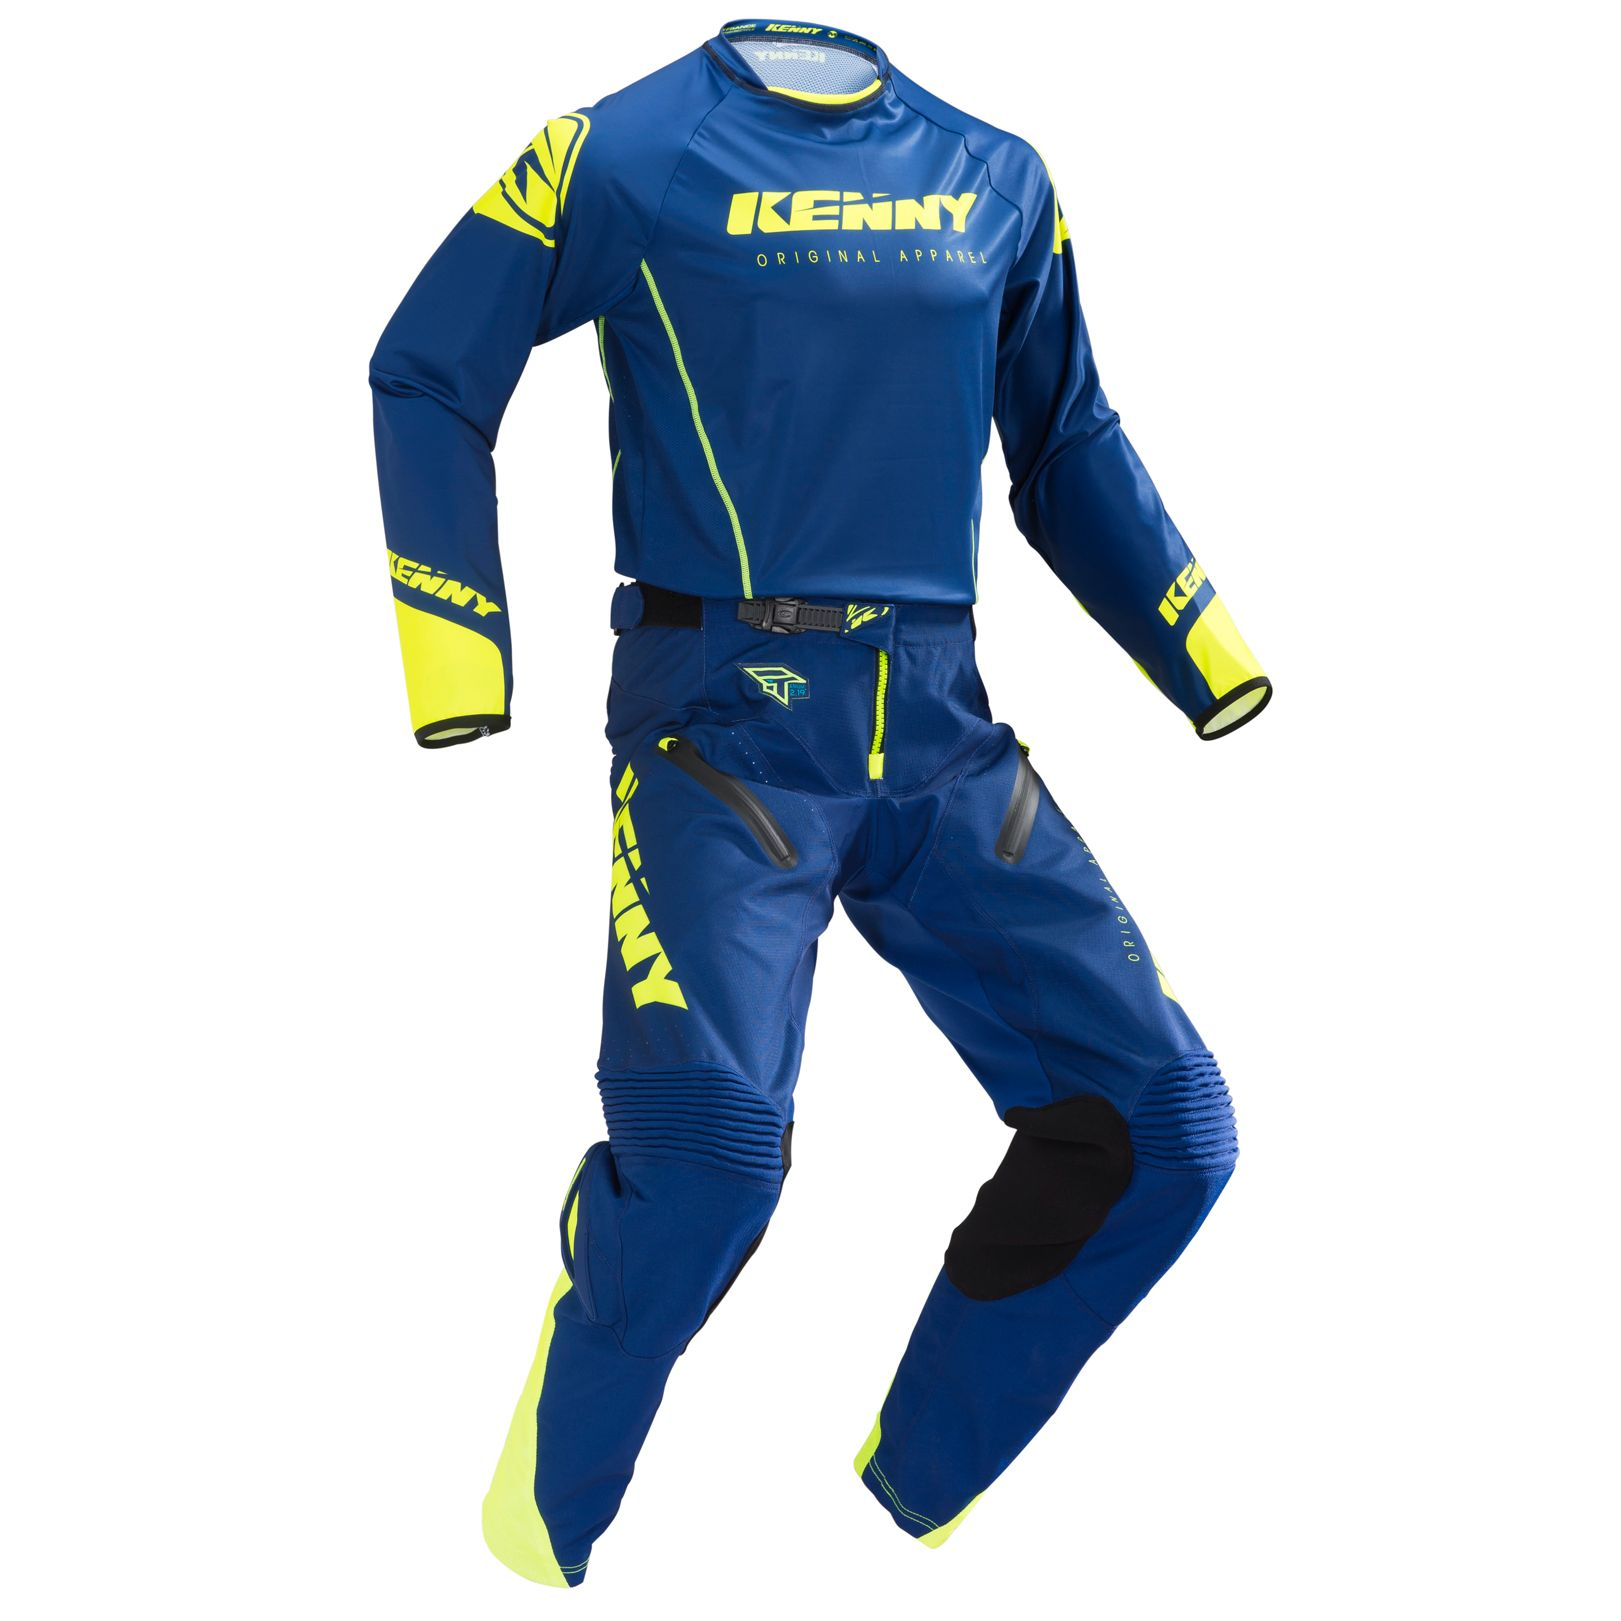 Pantalon cross Kenny TITANIUM NAVY NEON YELLOW 2019